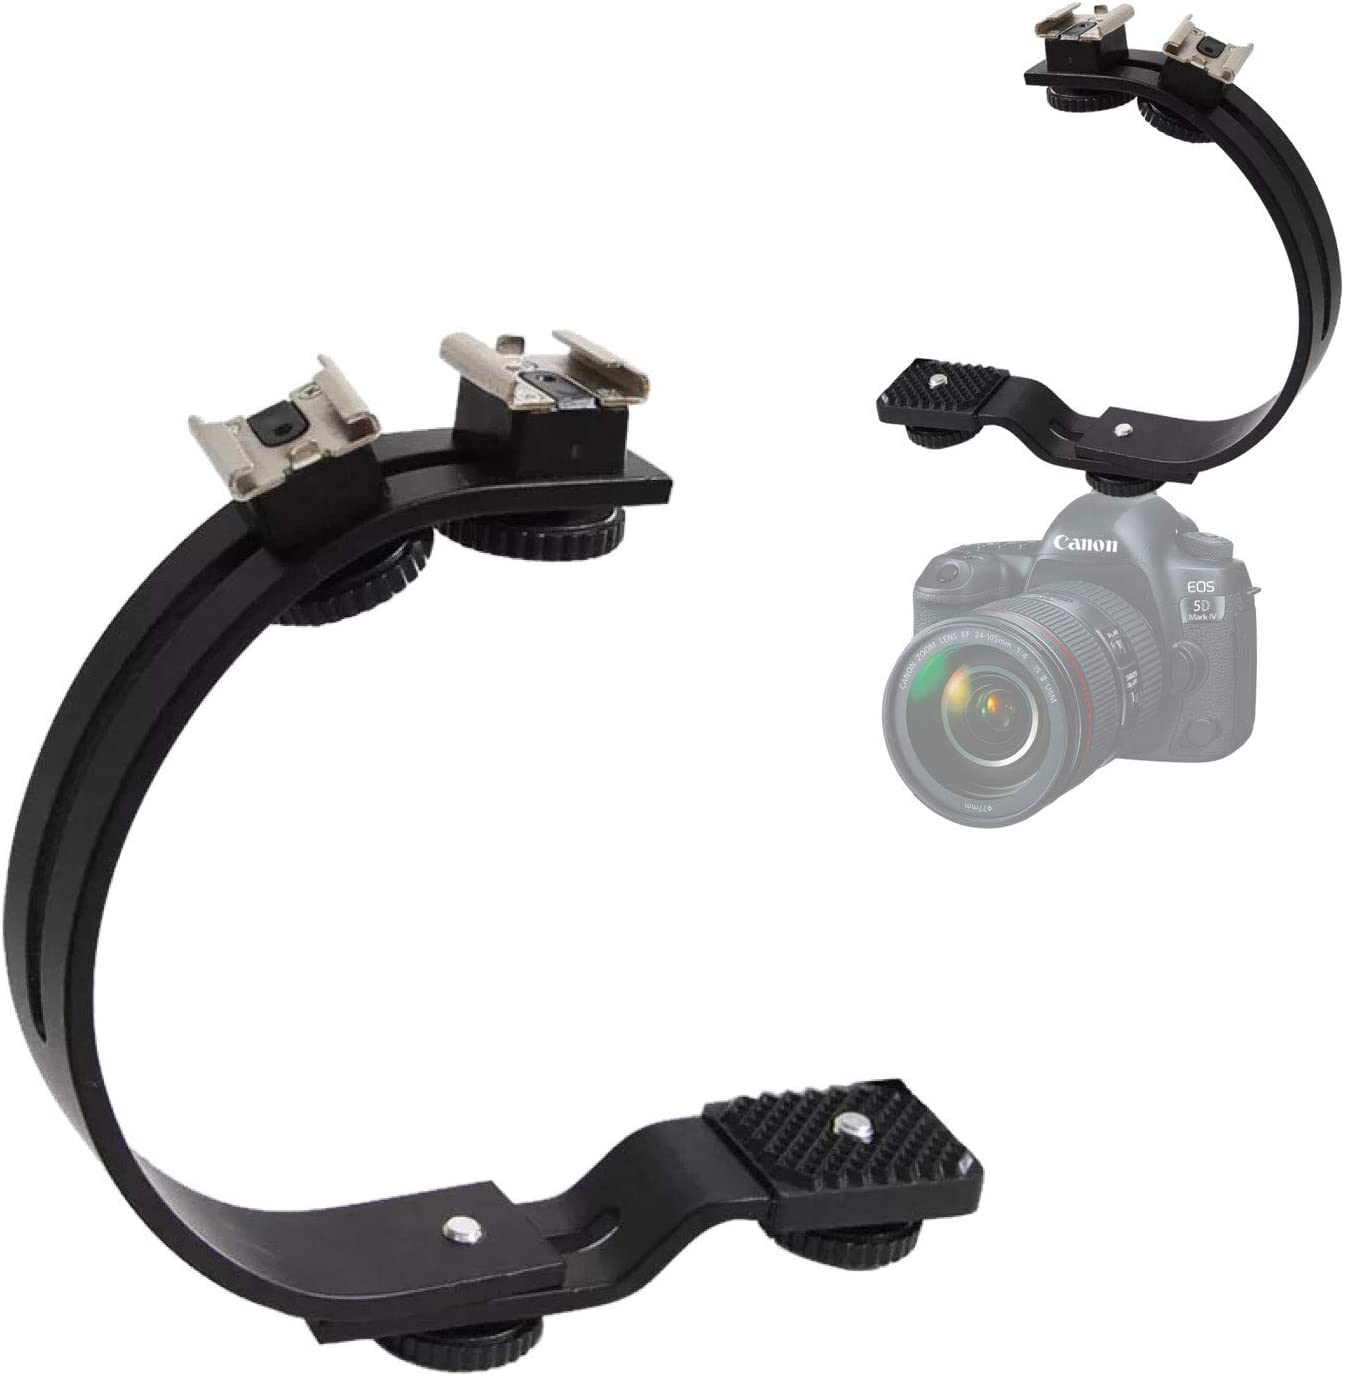 Semoic DV Hand Held C-Shaped Shooting Video Stabilizer Hand-held Low Frame Flash Stands Stabilizer